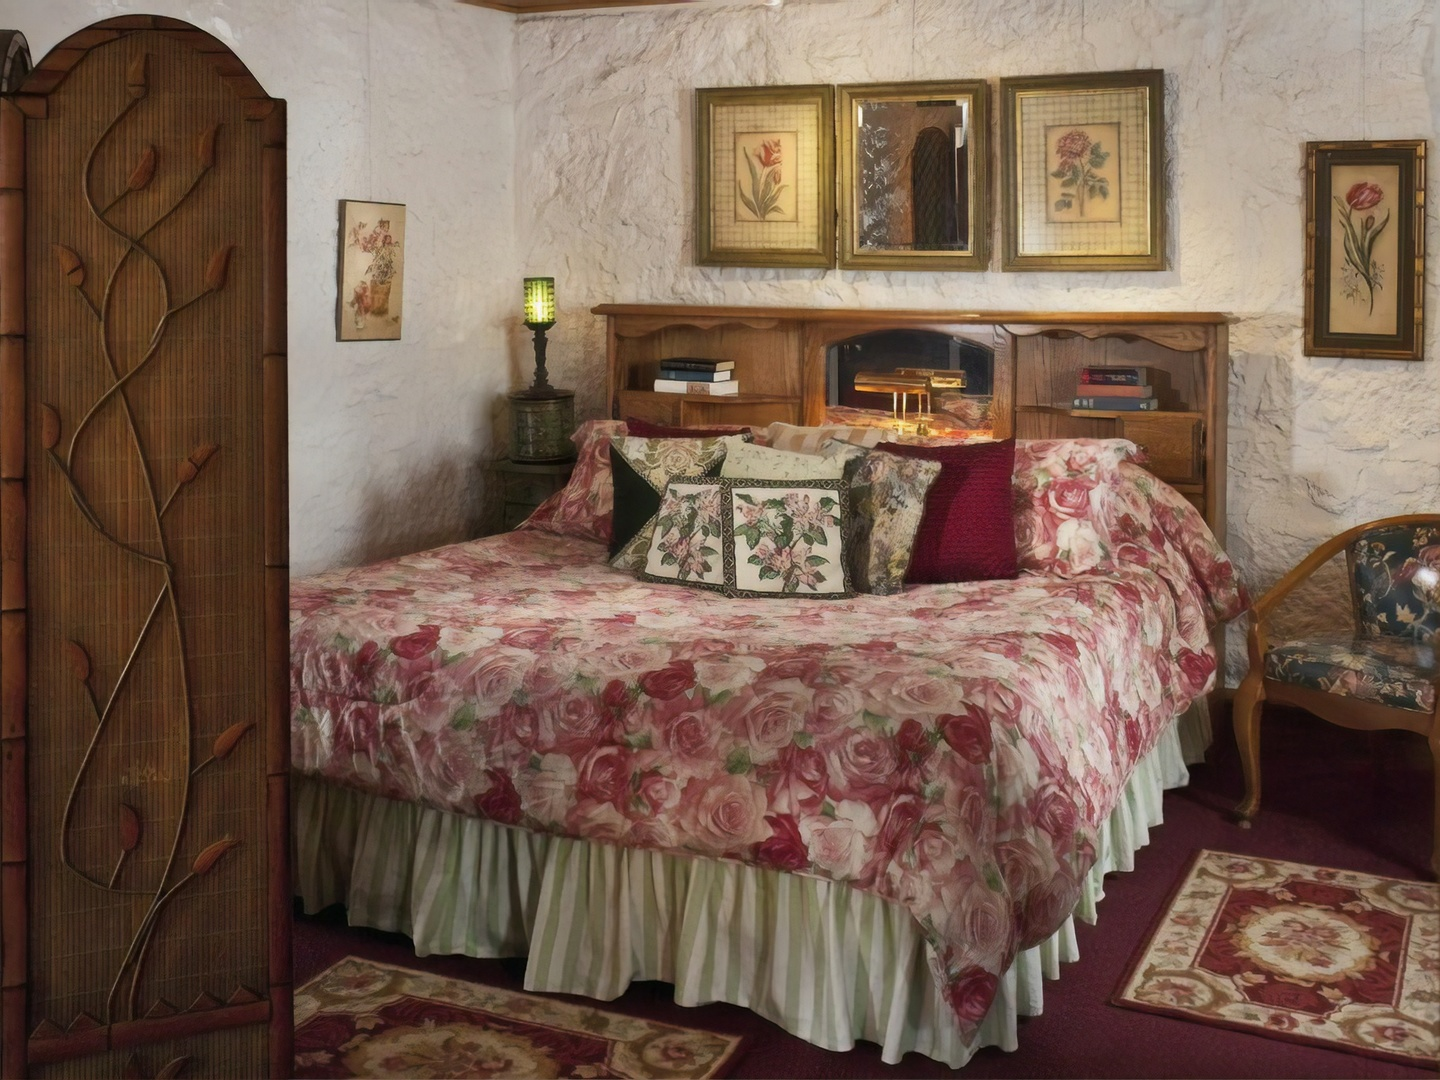 A bedroom with a bed in a room at Cliff Cottage Inn - Boutique Hotel and Bed & Breakfast.